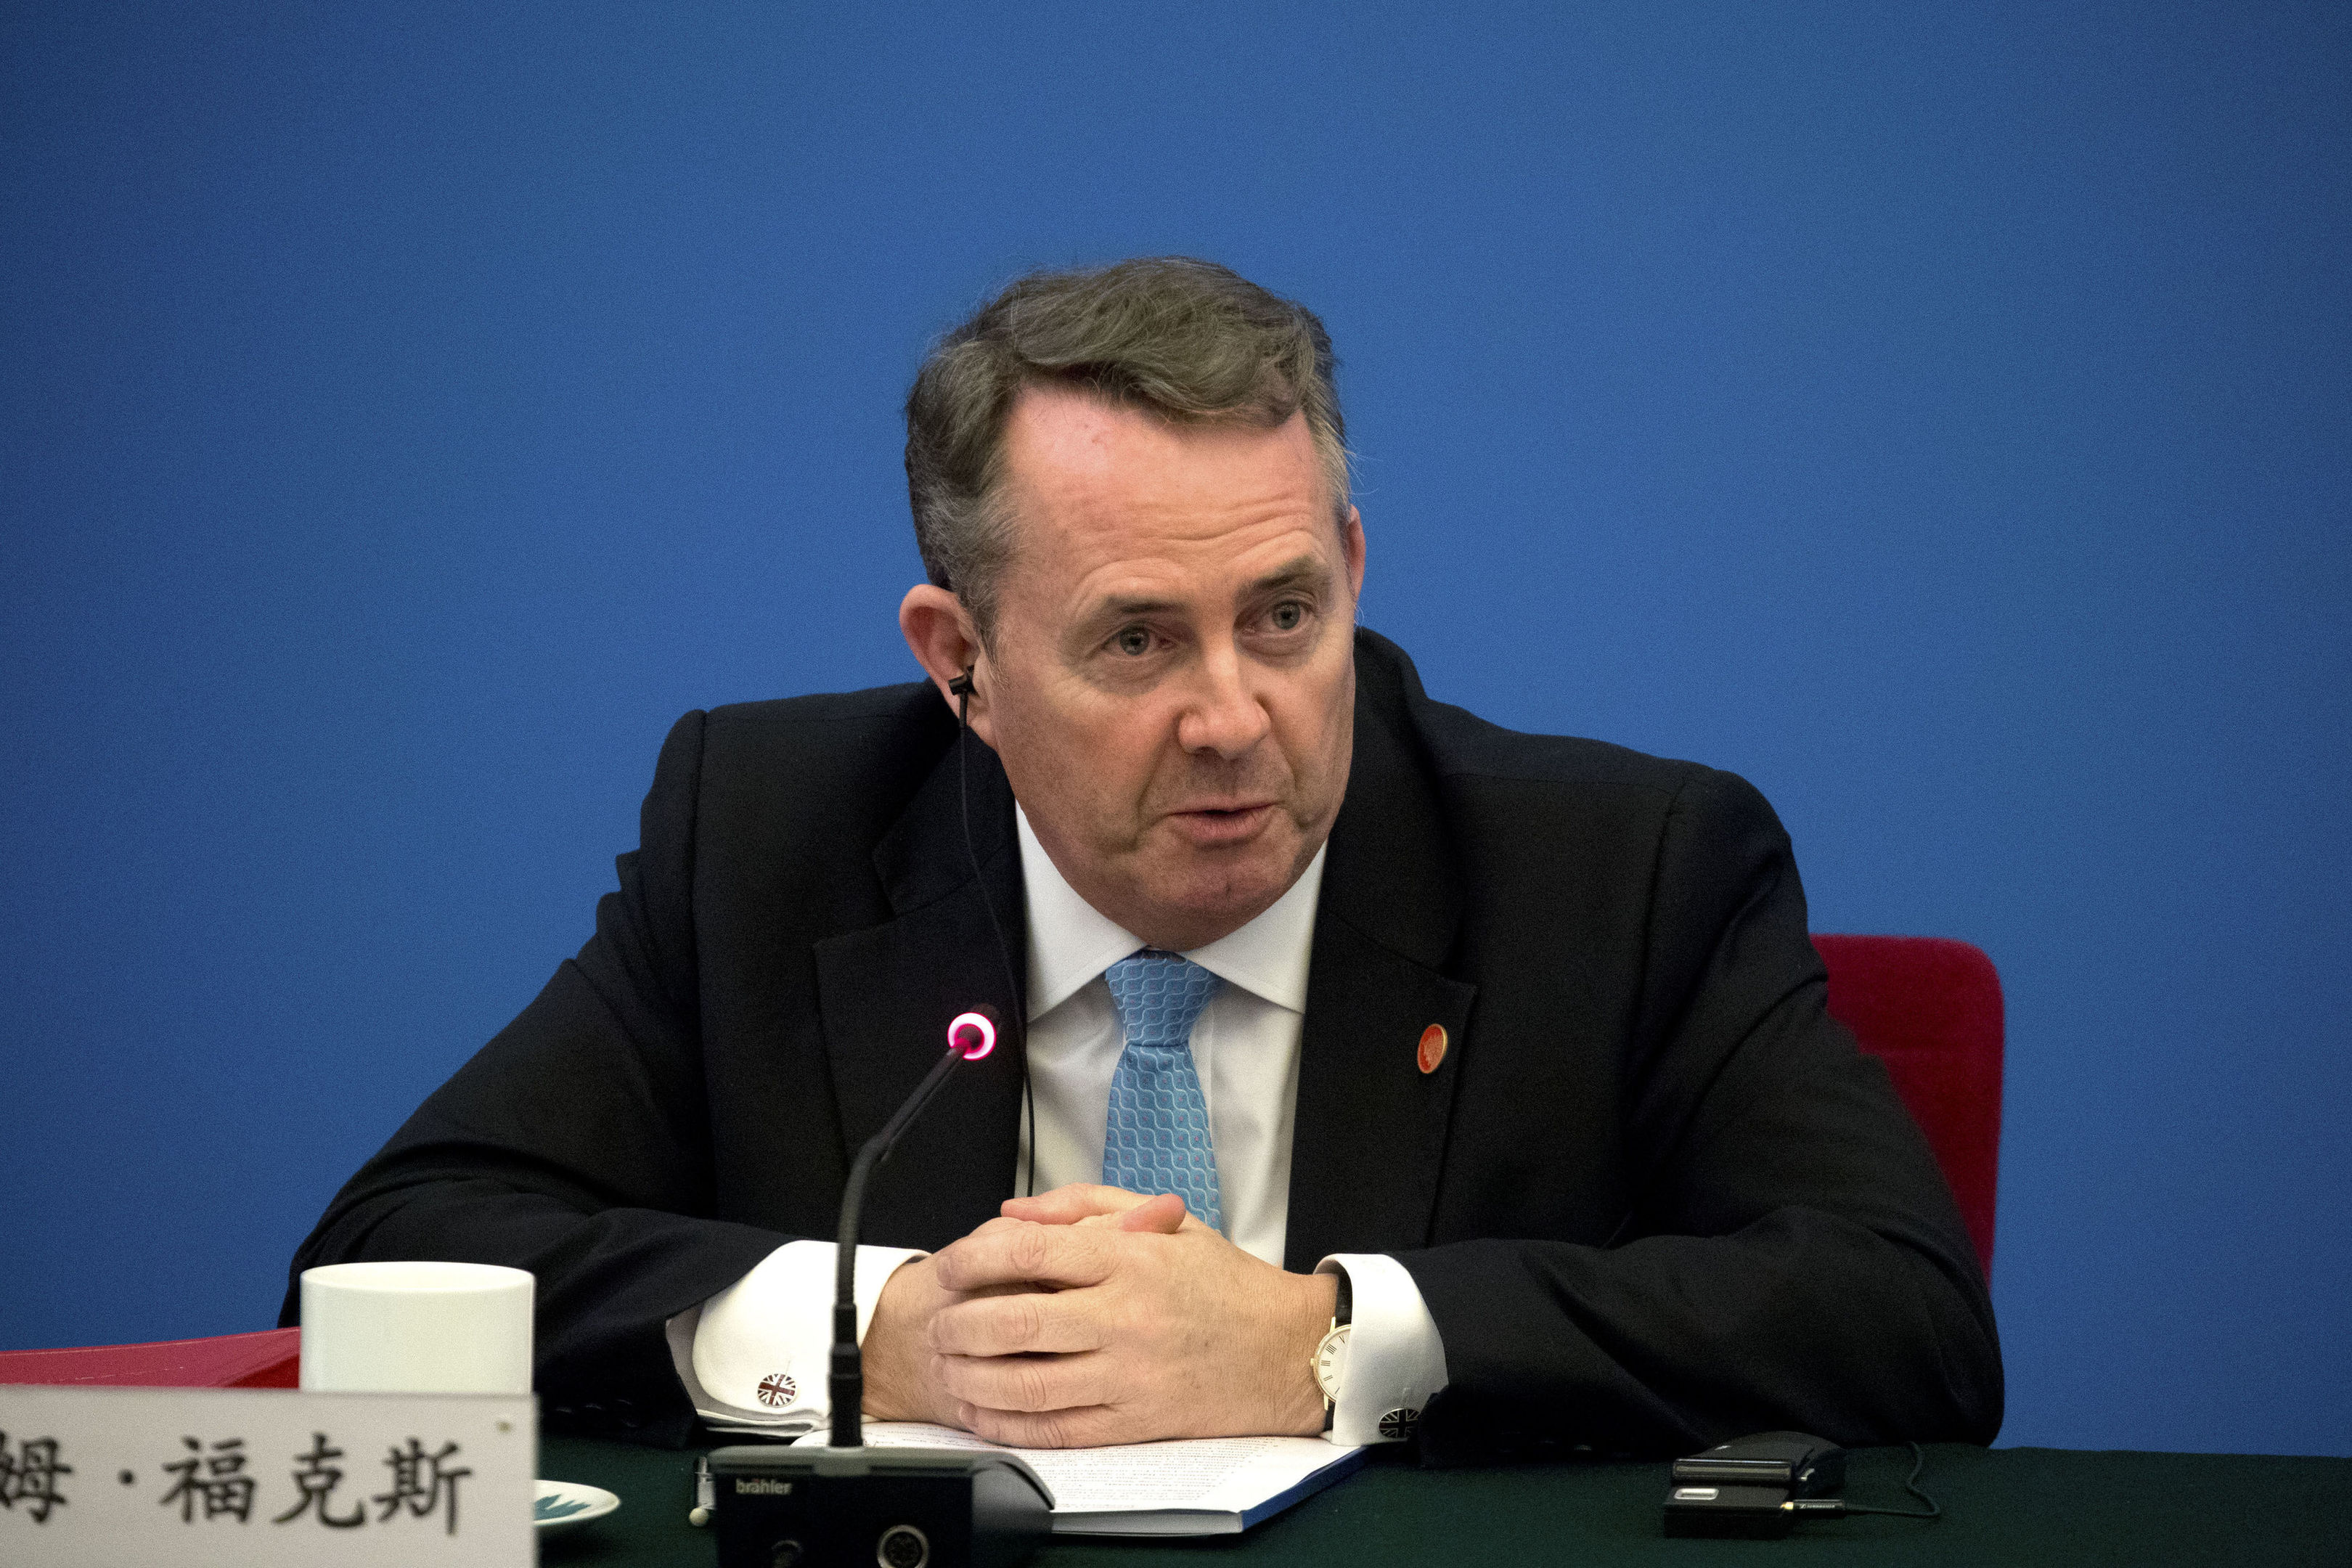 British Secretary of State for International Trade Liam Fox speaks during the inaugural meeting of the UK-China CEO Council at the Great Hall of the People in Beijing, Wednesday, Jan. 31, 2018. (AP Photo/Mark Schiefelbein, Pool)